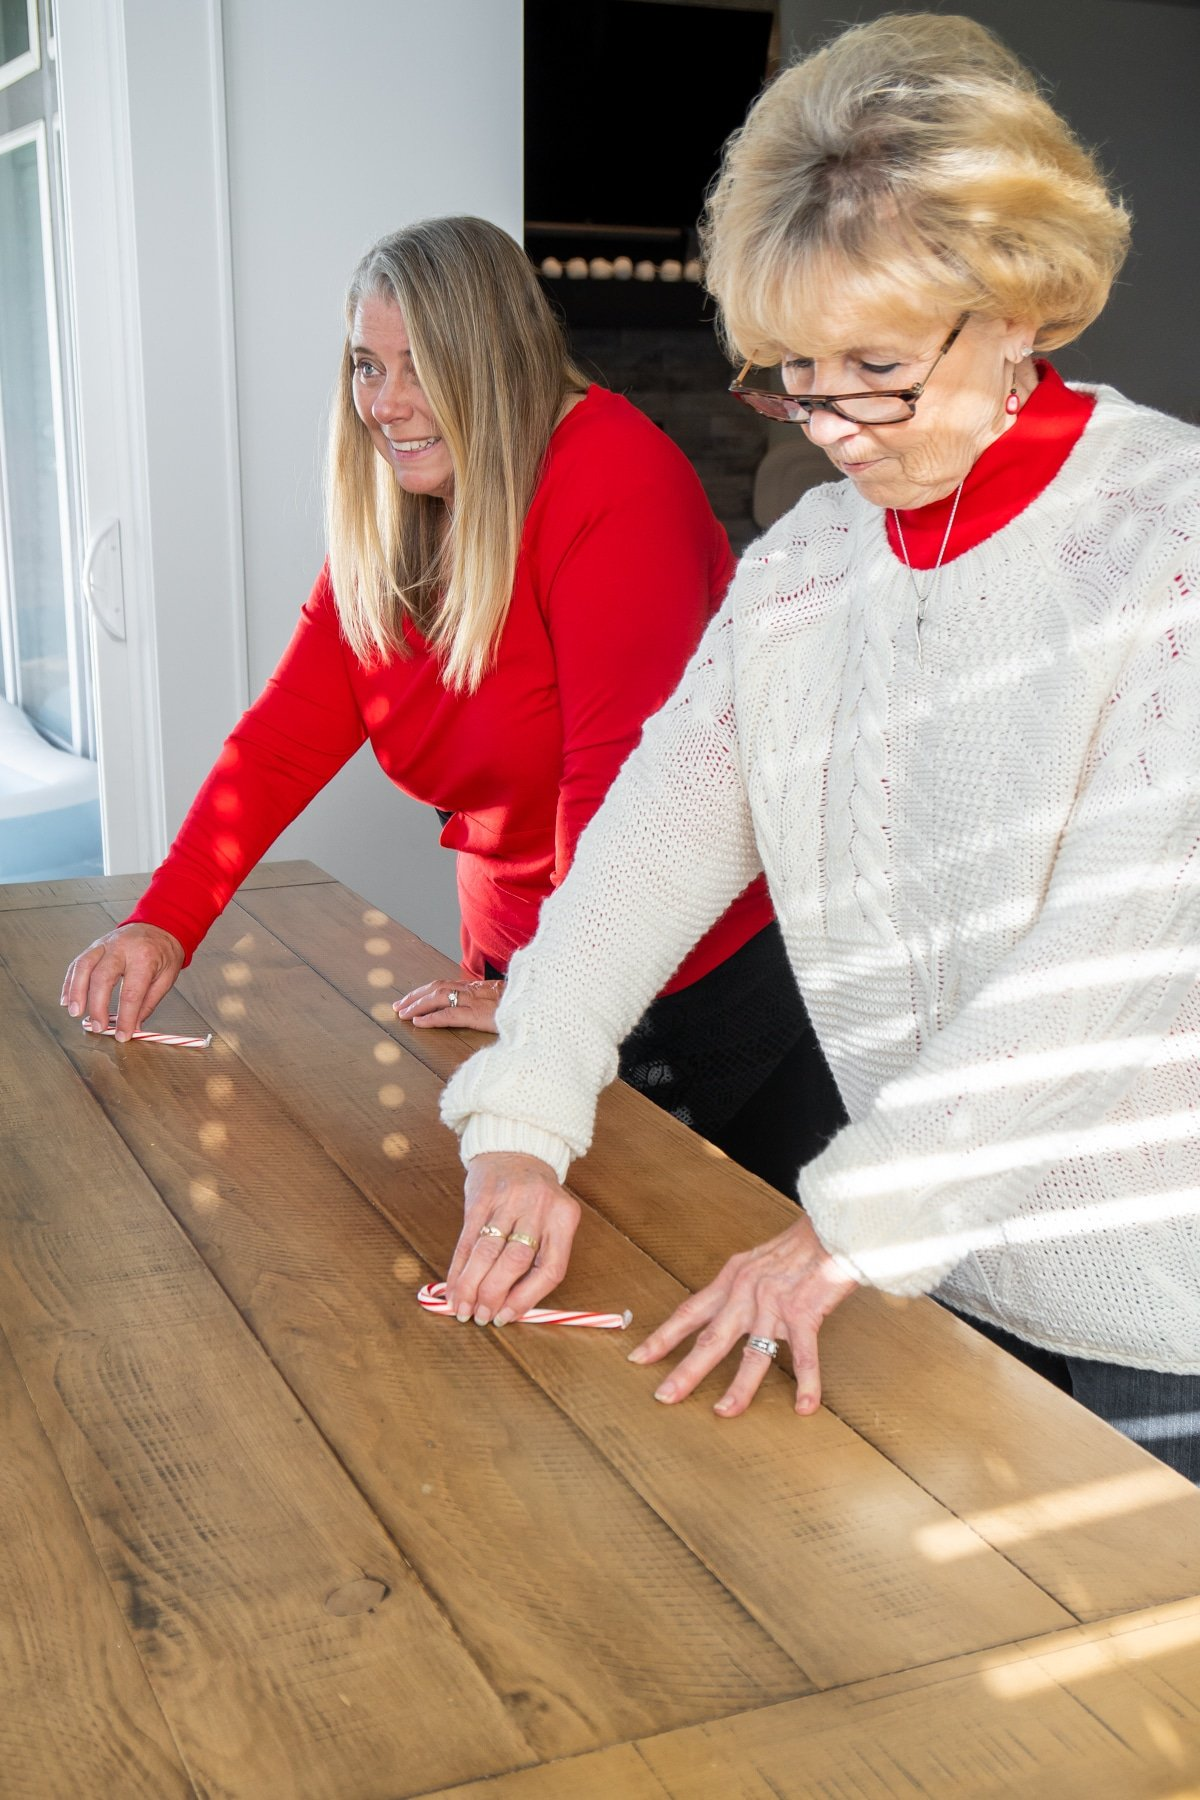 Two women spinning a candy cane on a table